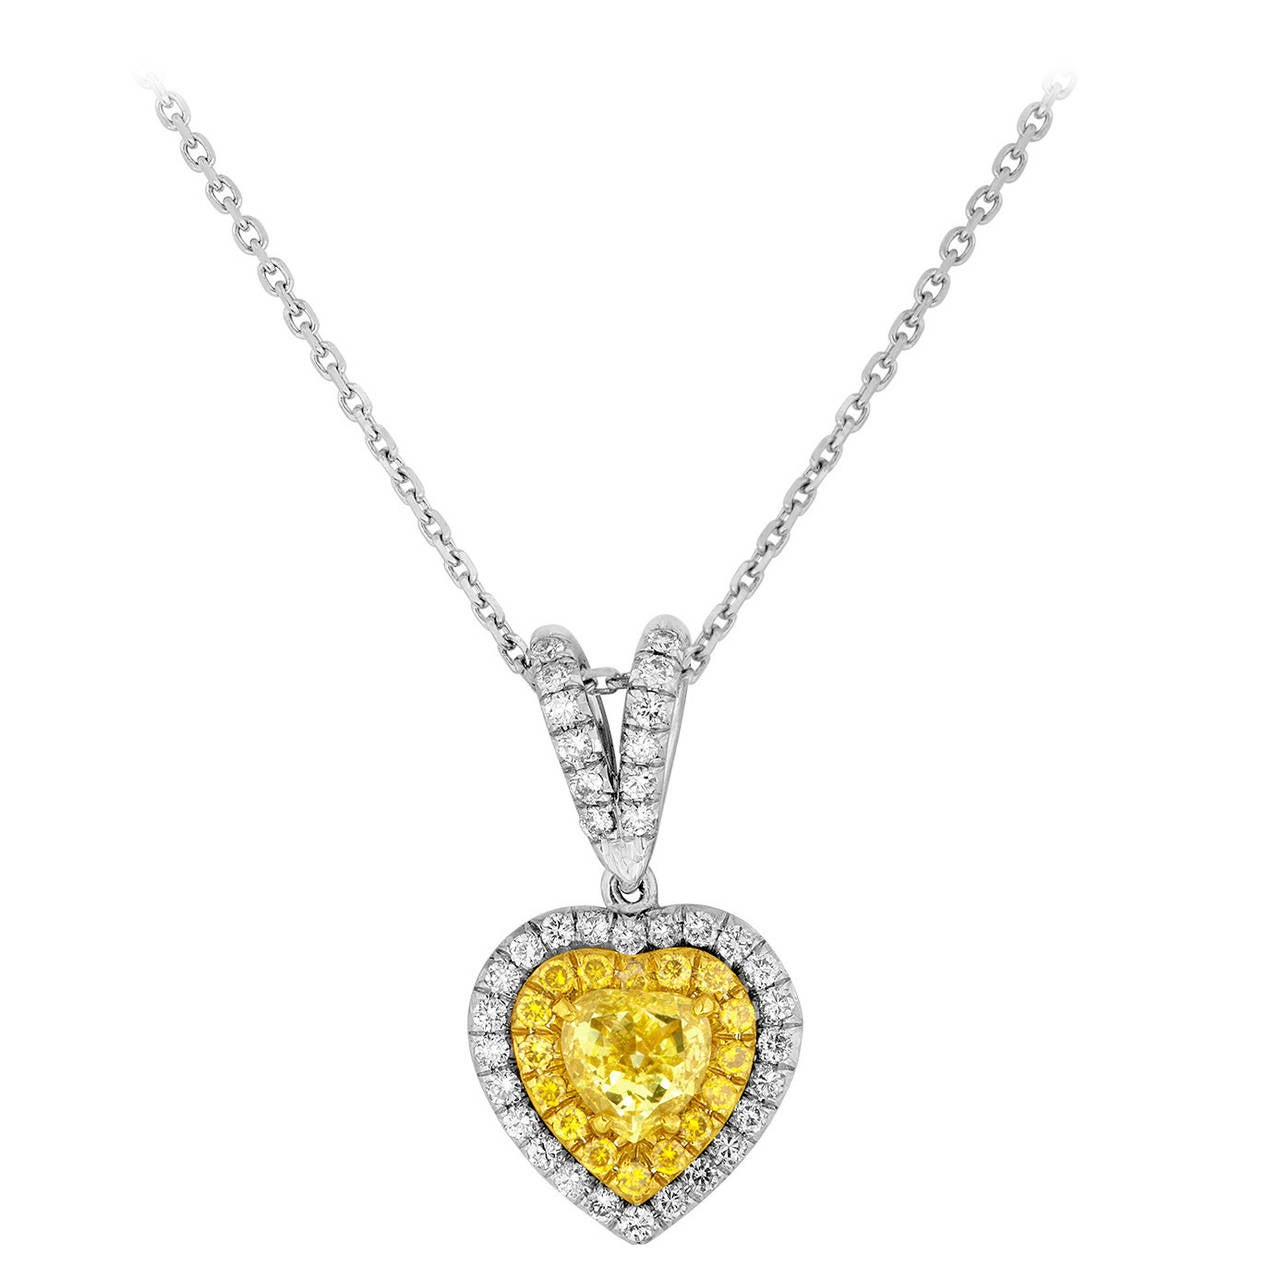 0.81 Carats Fancy Intense Yellow Heart Gold Pendant Necklace